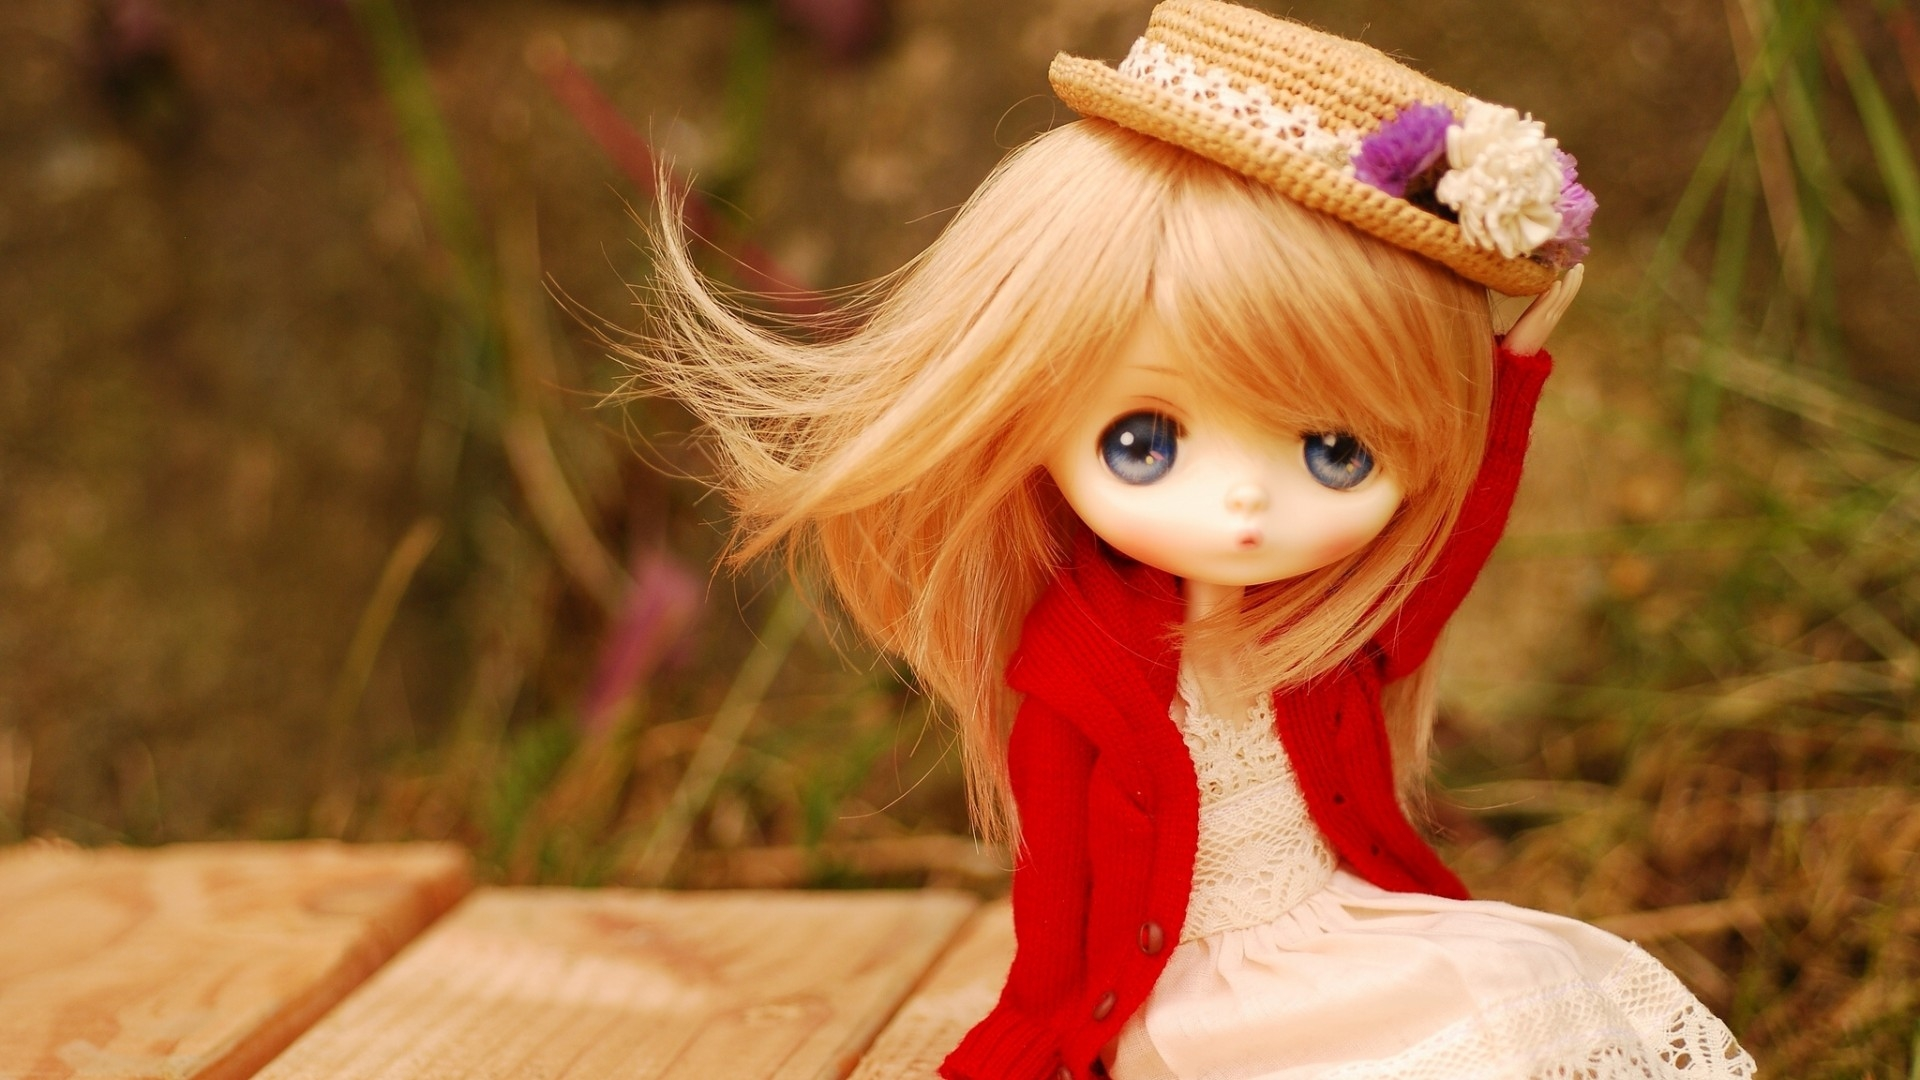 Cute Dolls Wallpapers Movie Hd Wallpapers